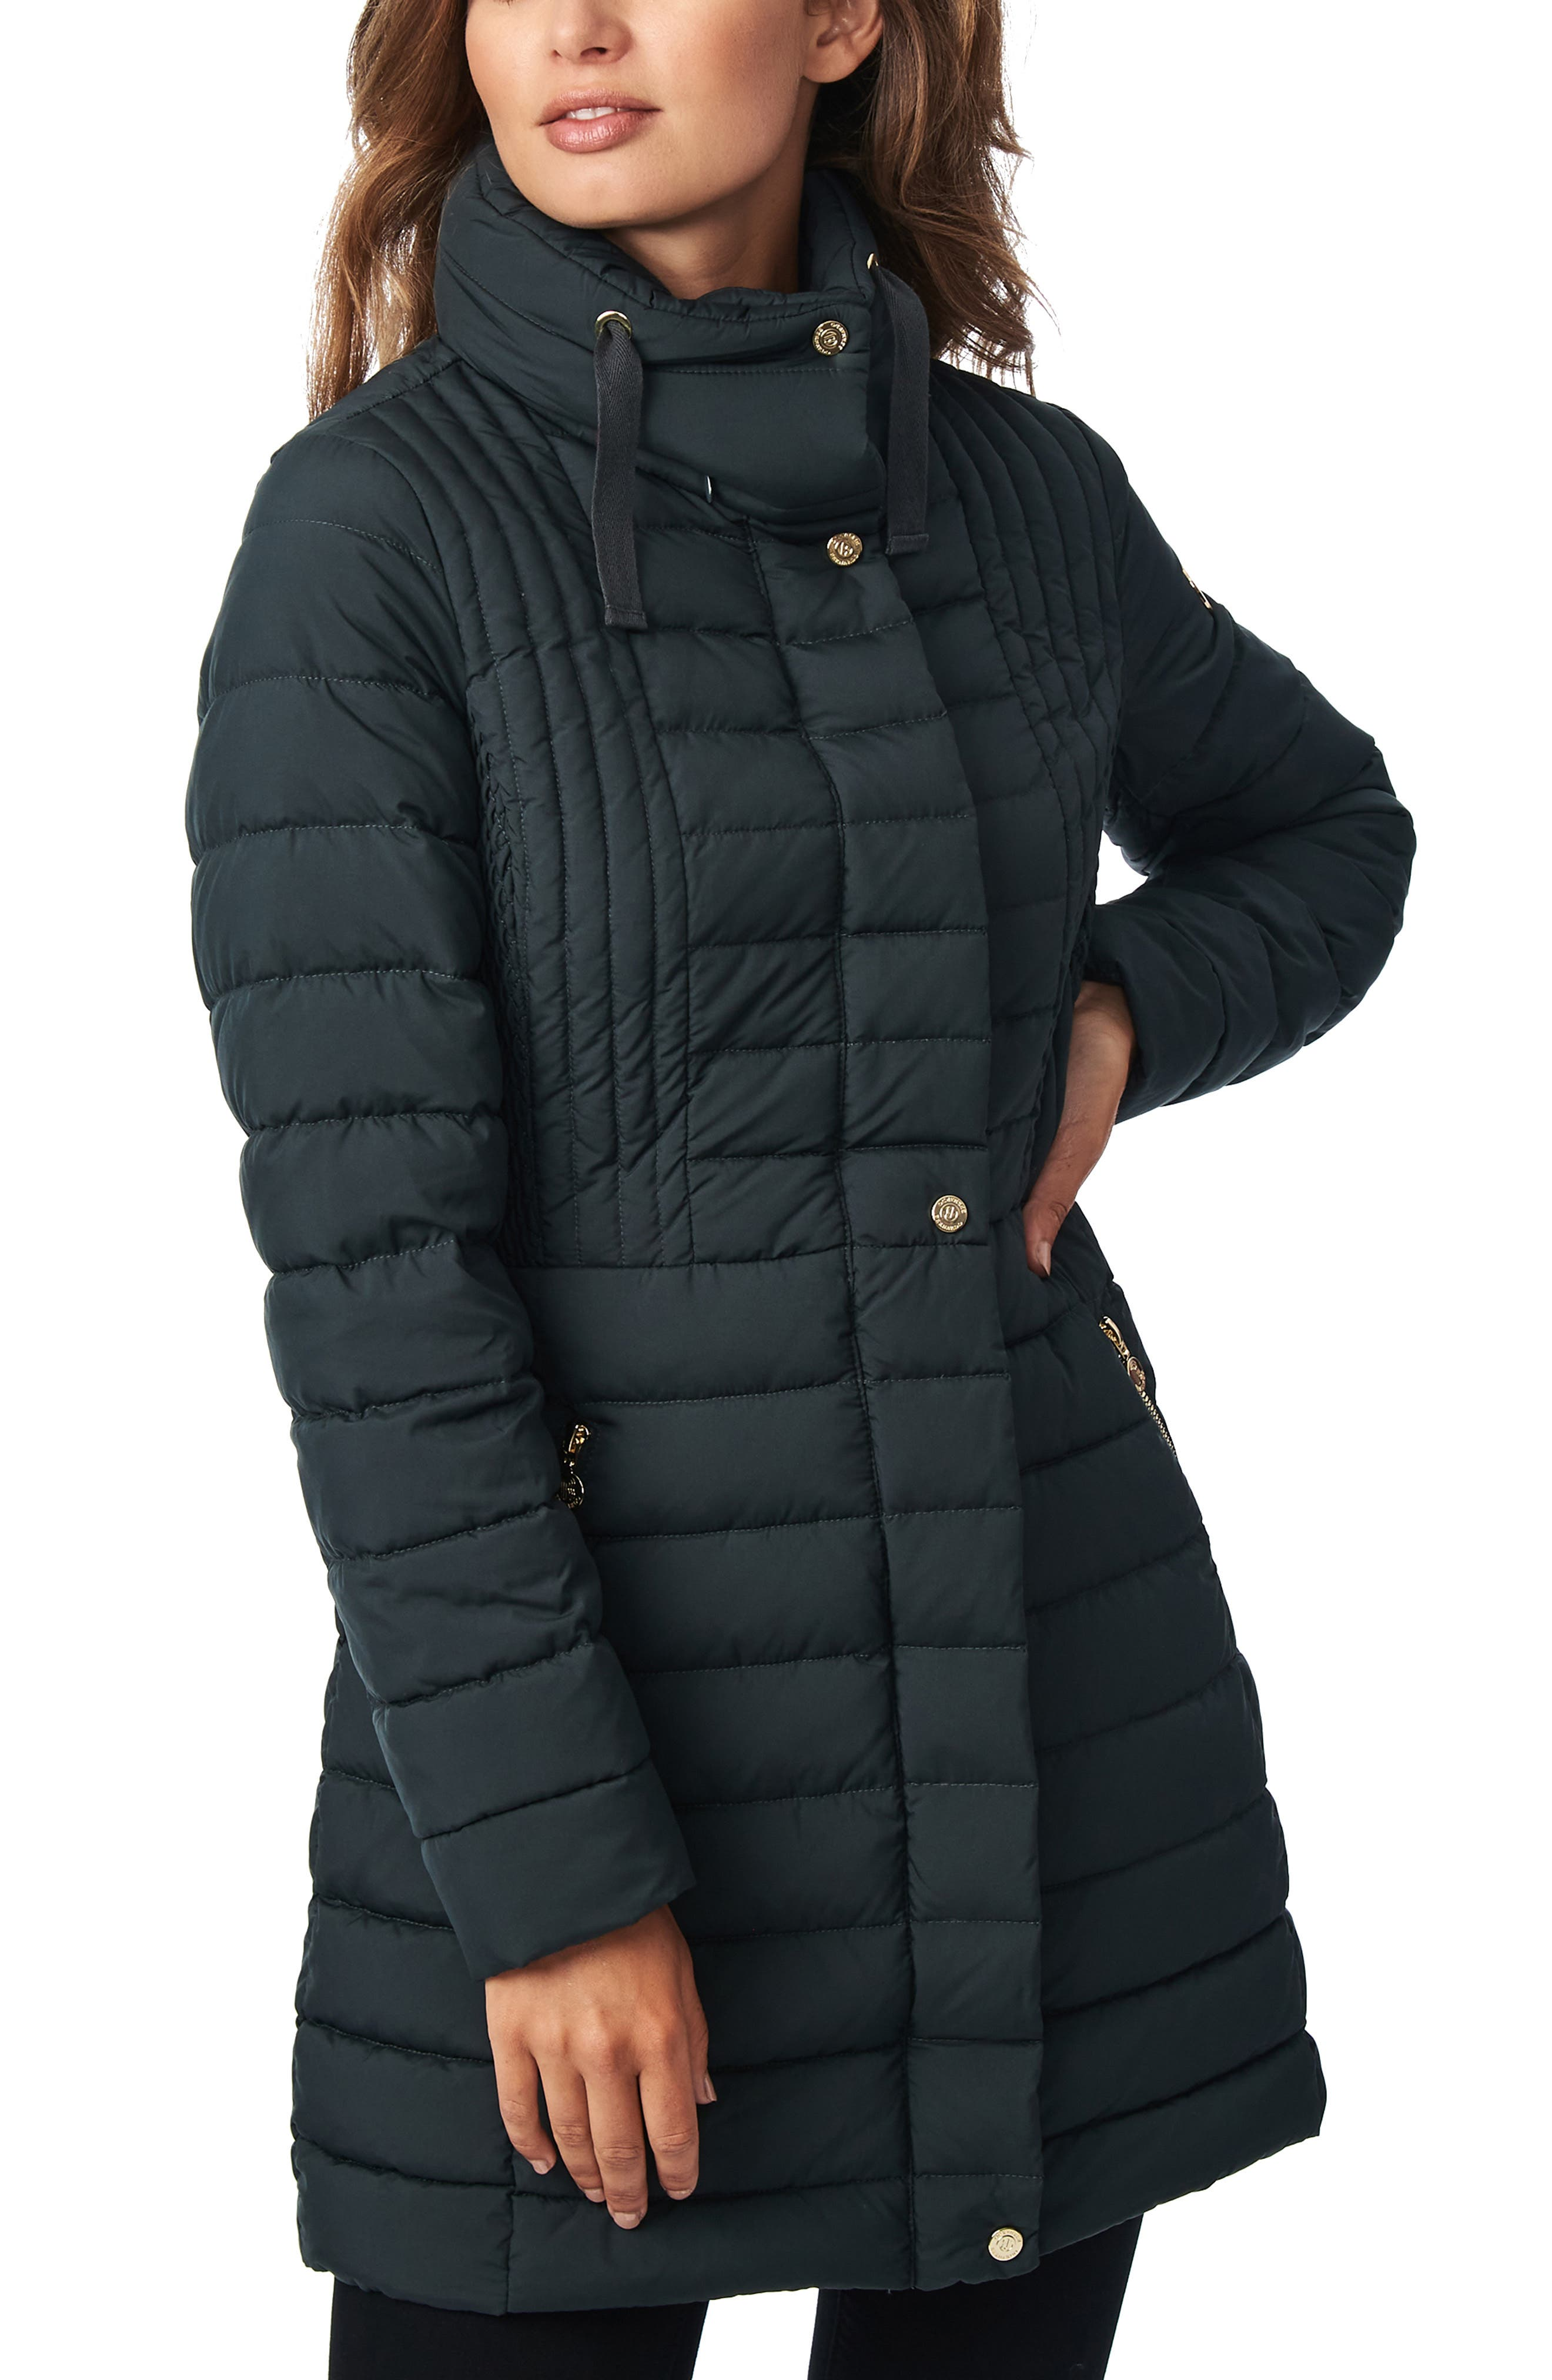 Strategic seaming offers a shapely silhouette in a channel-quilted puffer jacket that\\\'s a great choice for cozy commutes. A blend of cruelty-free, traceable down and synthetic PrimaLoft fill provides insulating warmth and wet-weather performance in a garment that\\\'s soft, lightweight and packable. Style Name: Bernardo Down & Primaloft Walker Jacket. Style Number: 5869629. Available in stores.